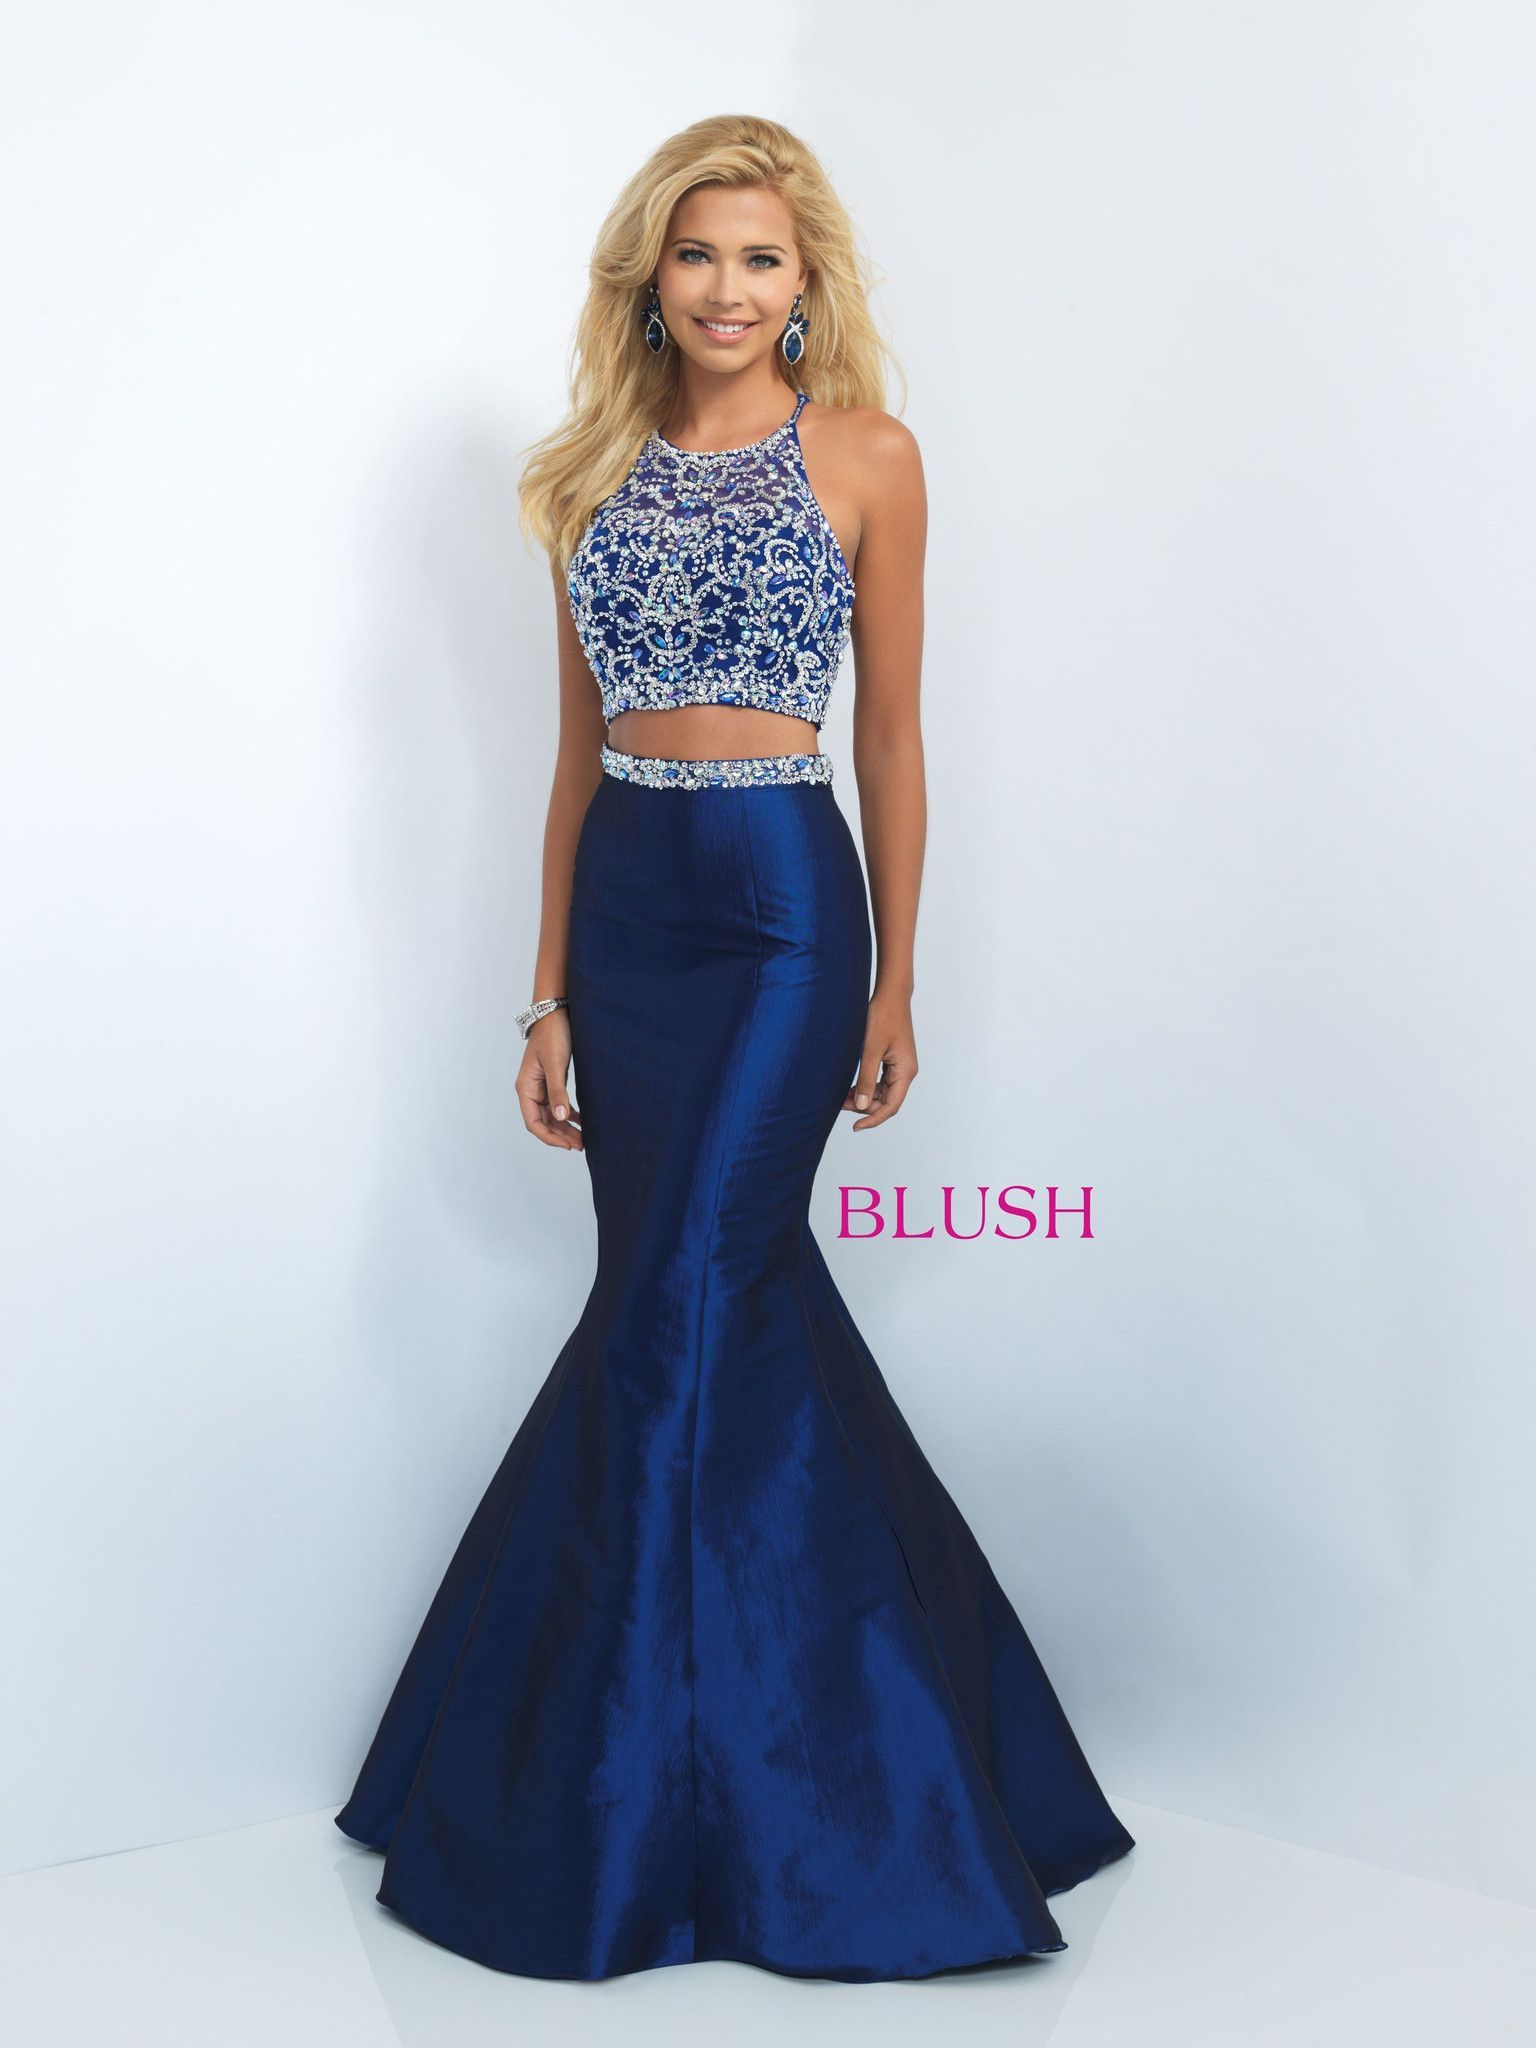 Blush prom navy de pinterest rsvp pageants and prom